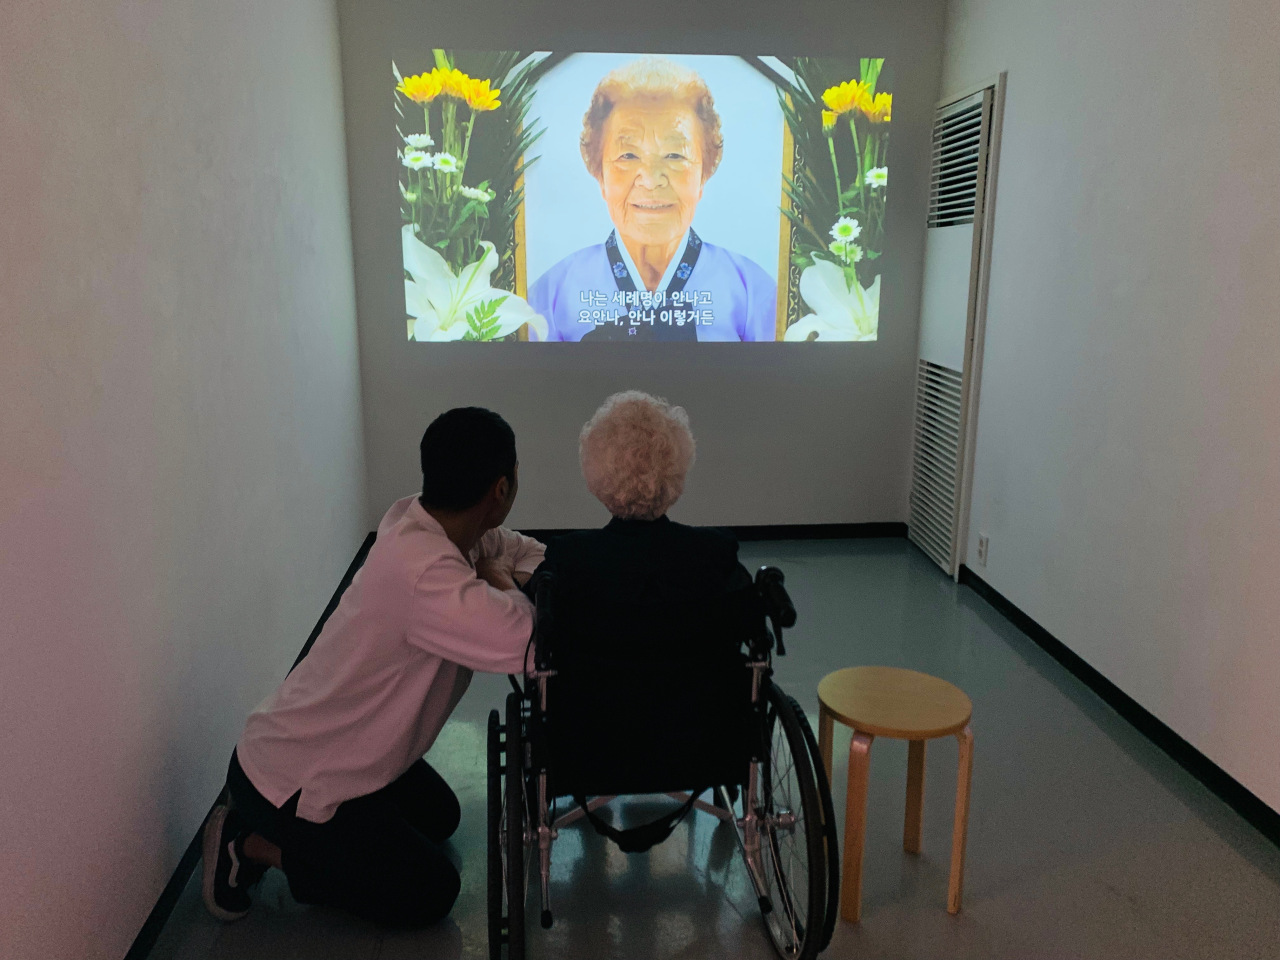 """Lee watches a video of her late friend Kim Gun-ja, a former """"comfort woman."""" Kim, who stayed in a room next to Lee's at the shelter, died in July 2017. Lee said Kim was like her """"other half."""" (Kim Arin/The Korea Herald)"""